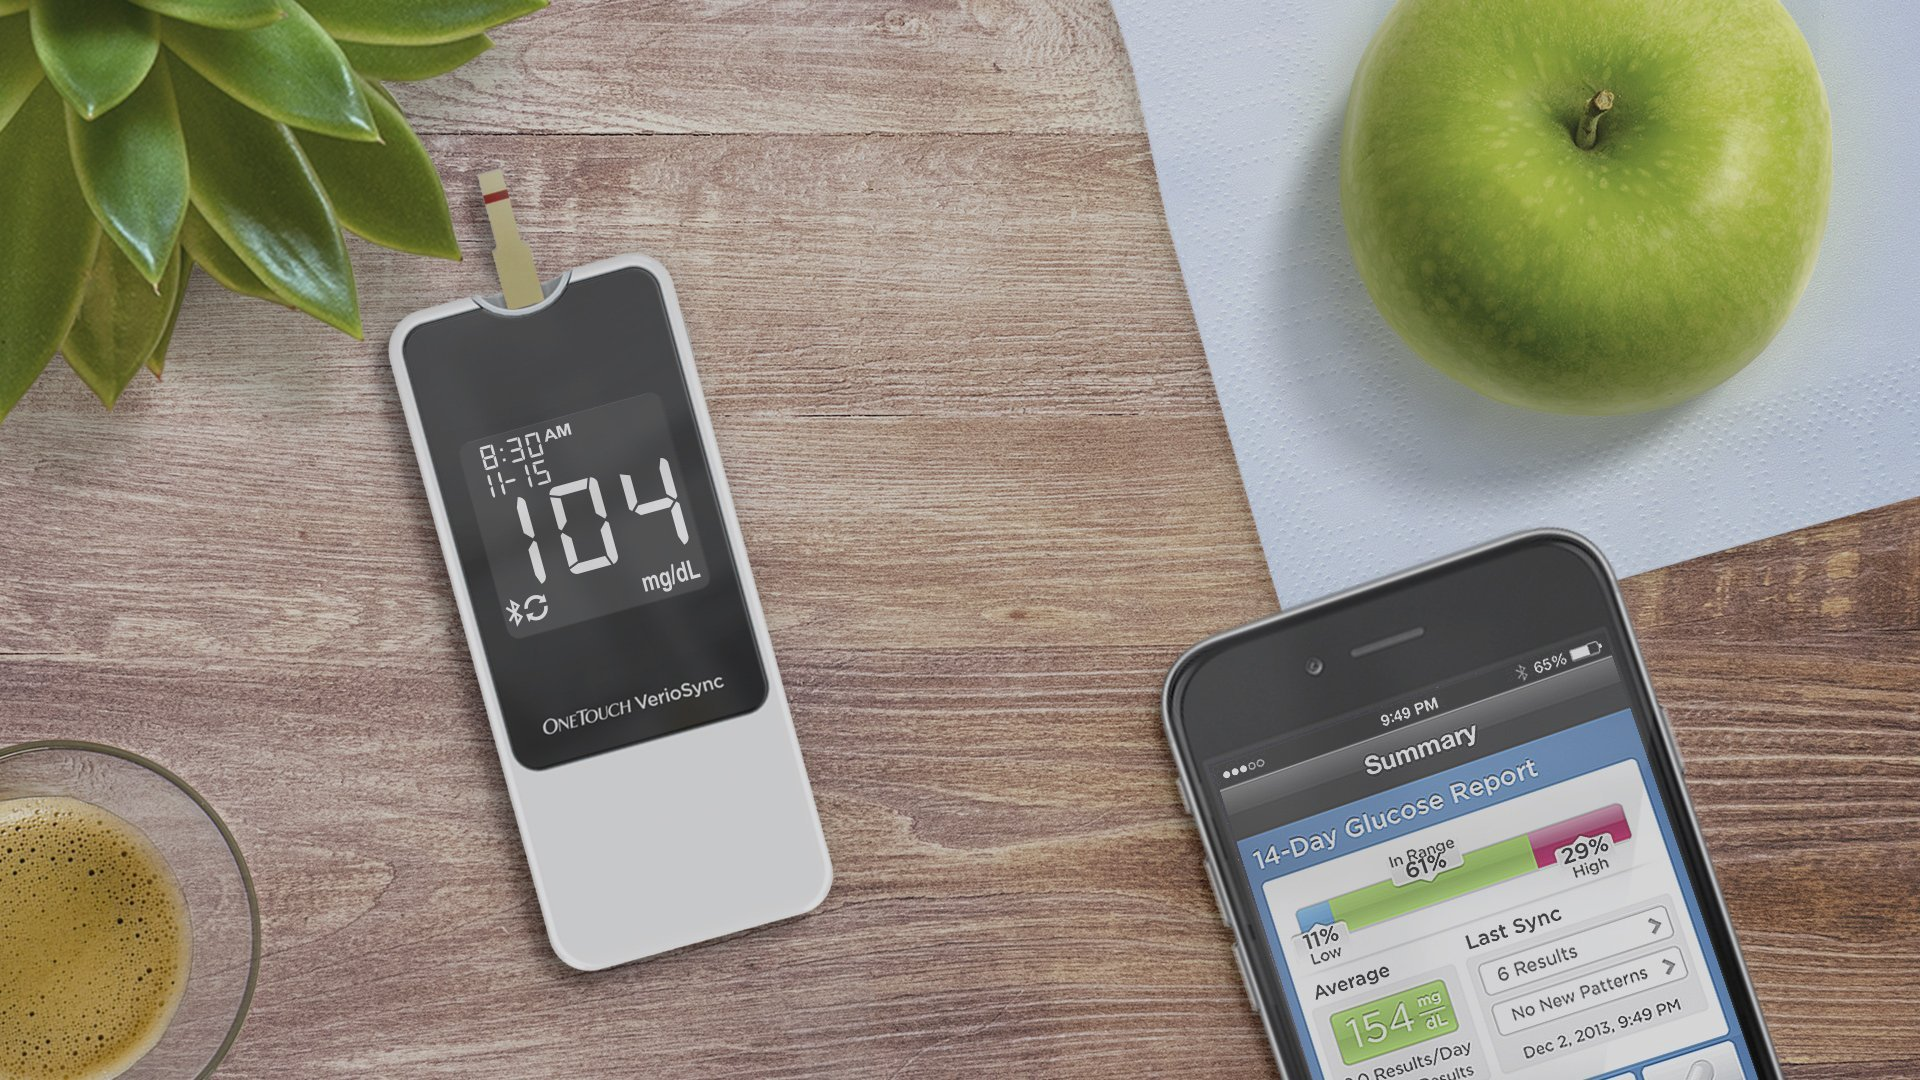 LifeScan OneTouch VerioSync blood glucose test meter next to a smartphone with a supporting app